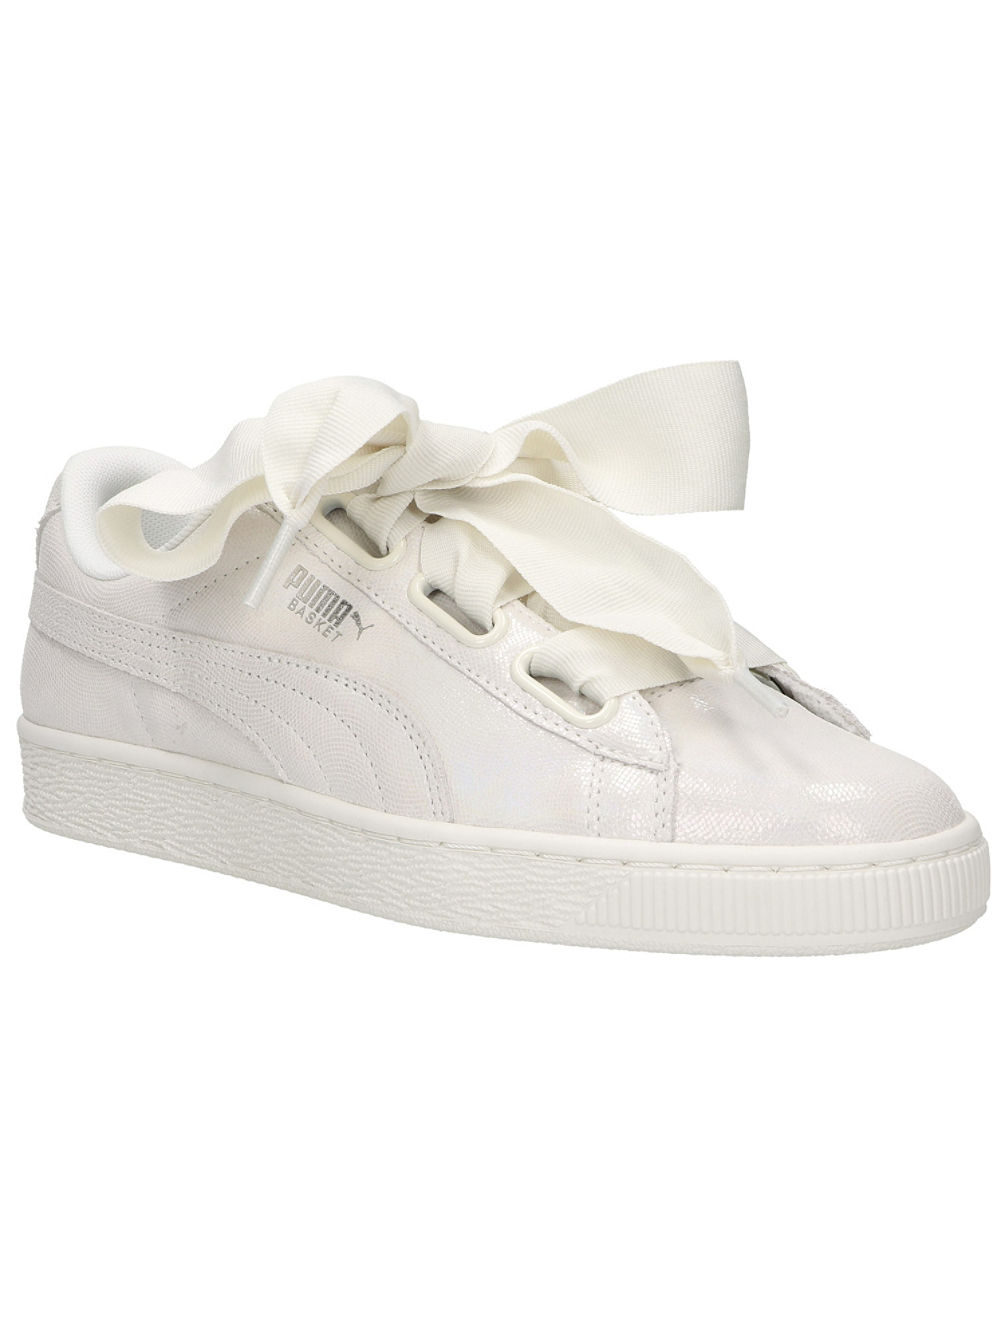 7c8dc93cca0d Buy Puma Basket Heart NS Wn s Sneakers Women online at blue-tomato.com